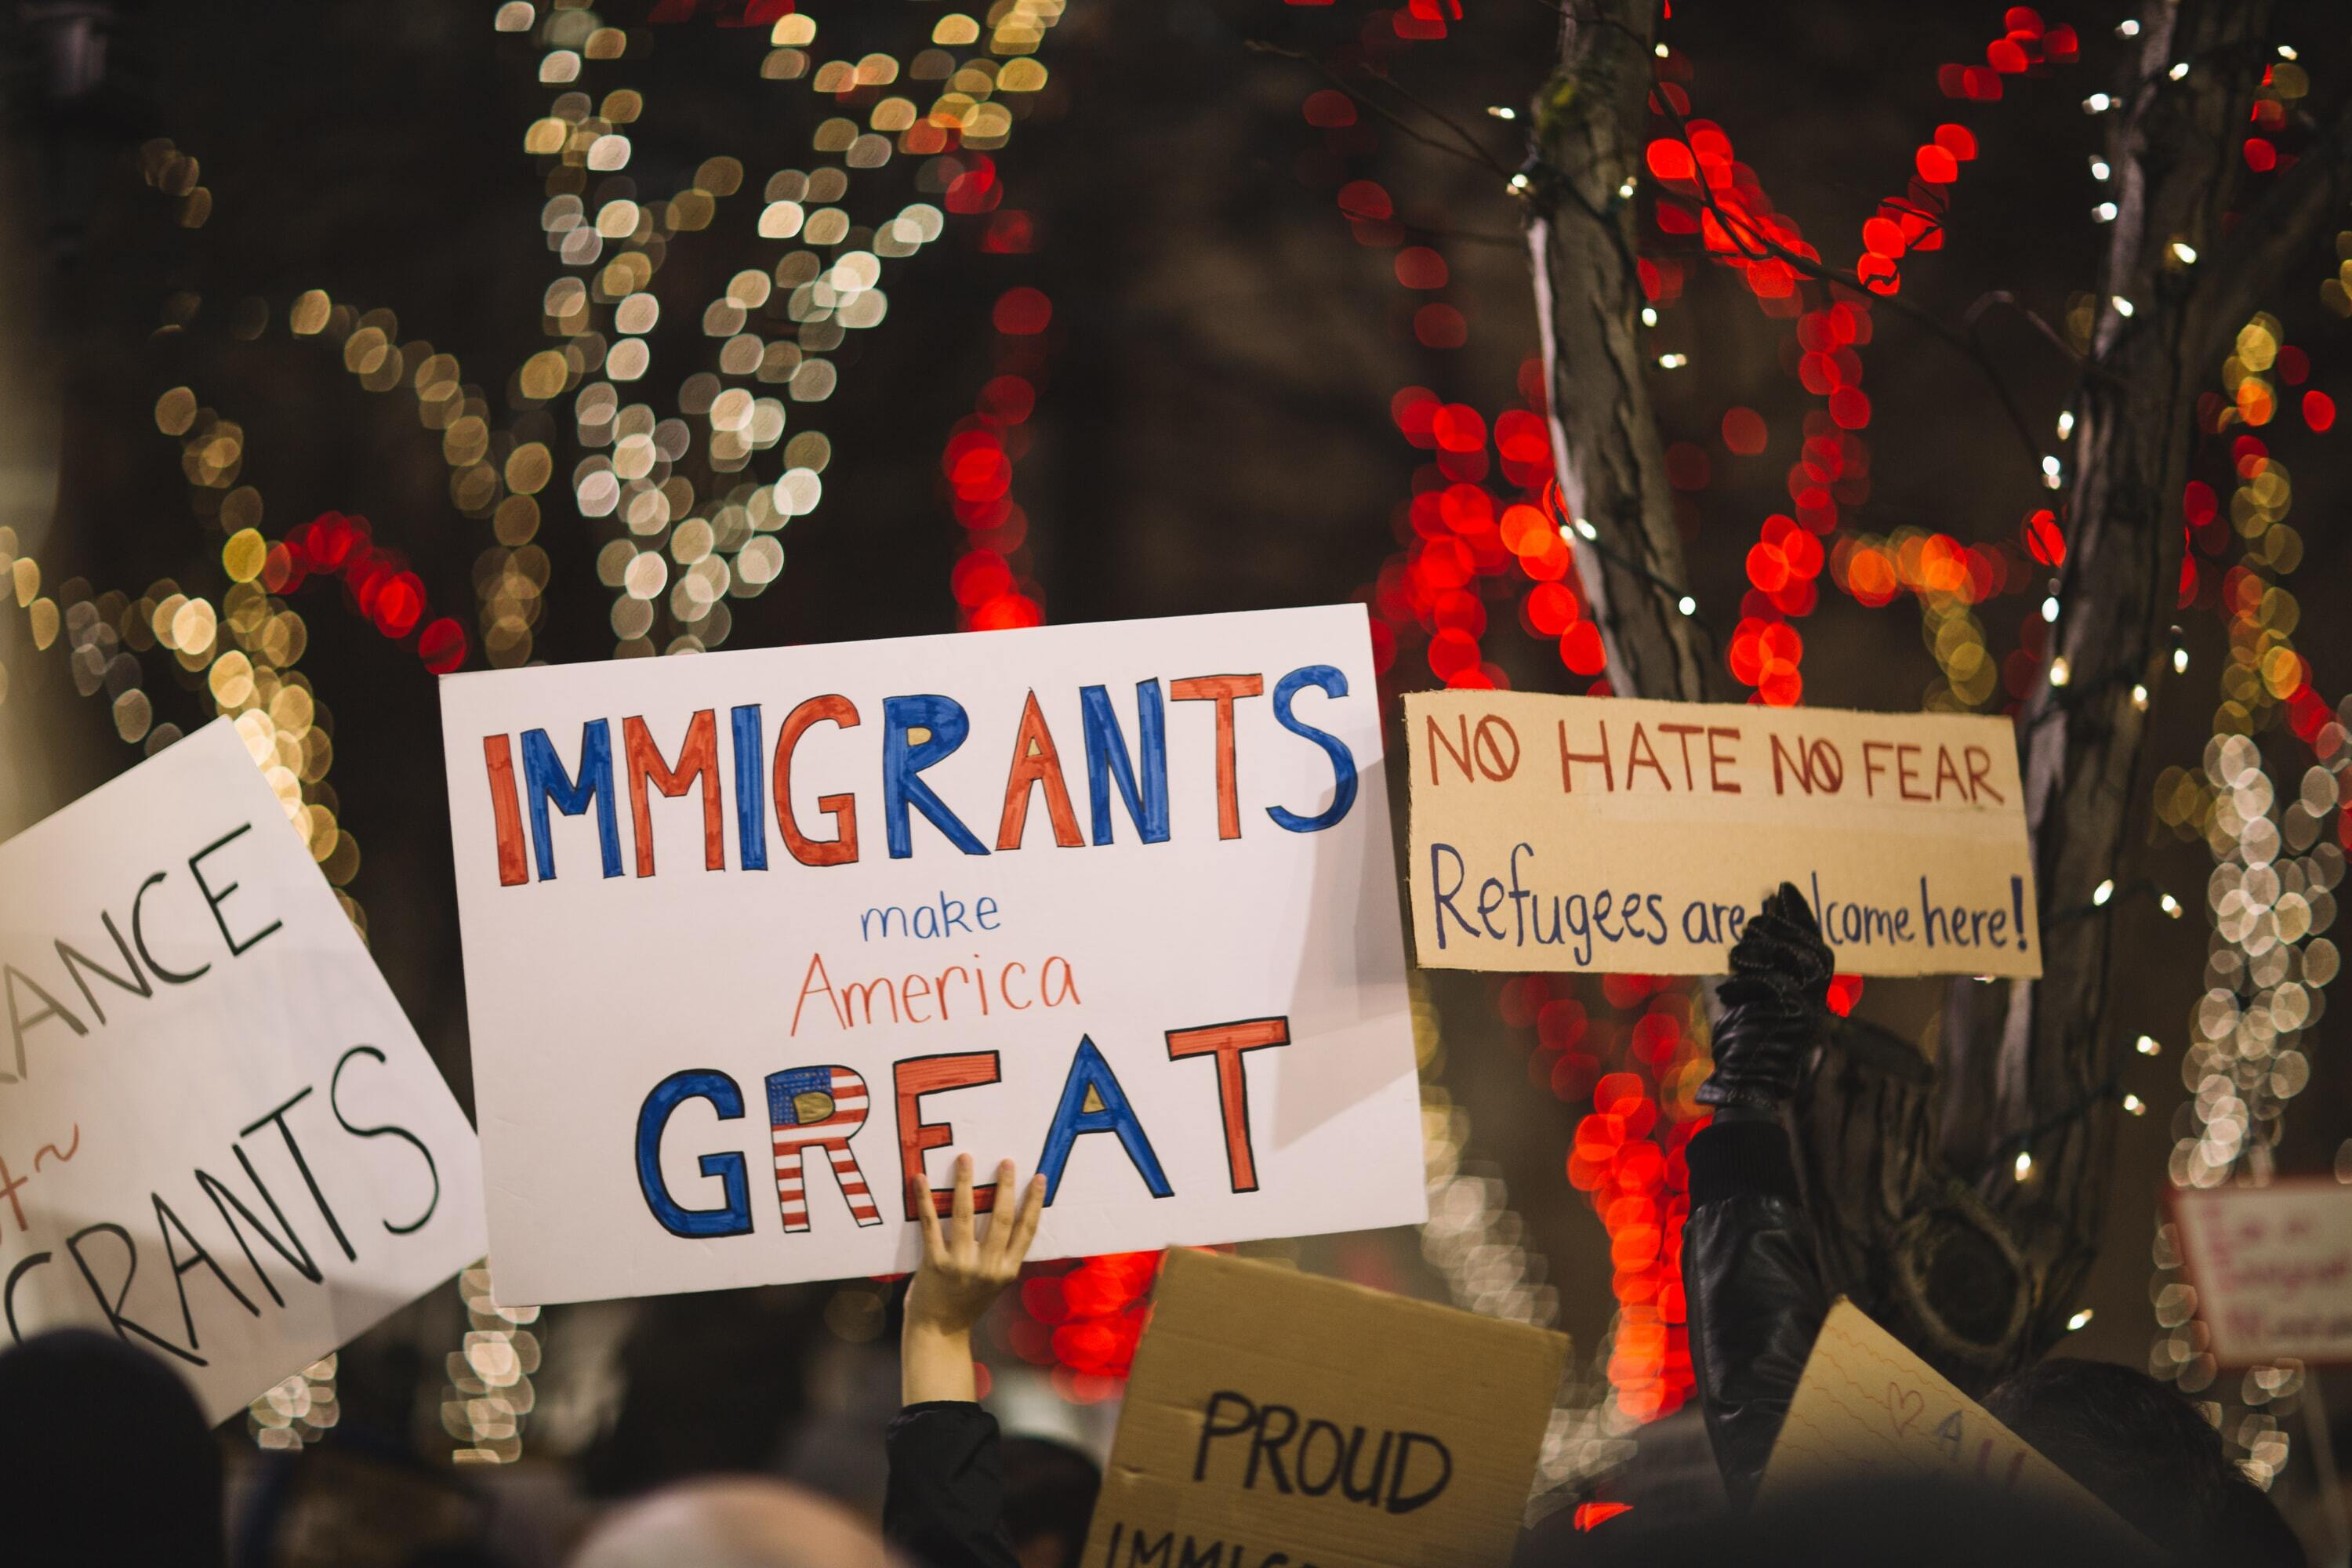 Sign at rally reads 'Immigrants Make America Great'